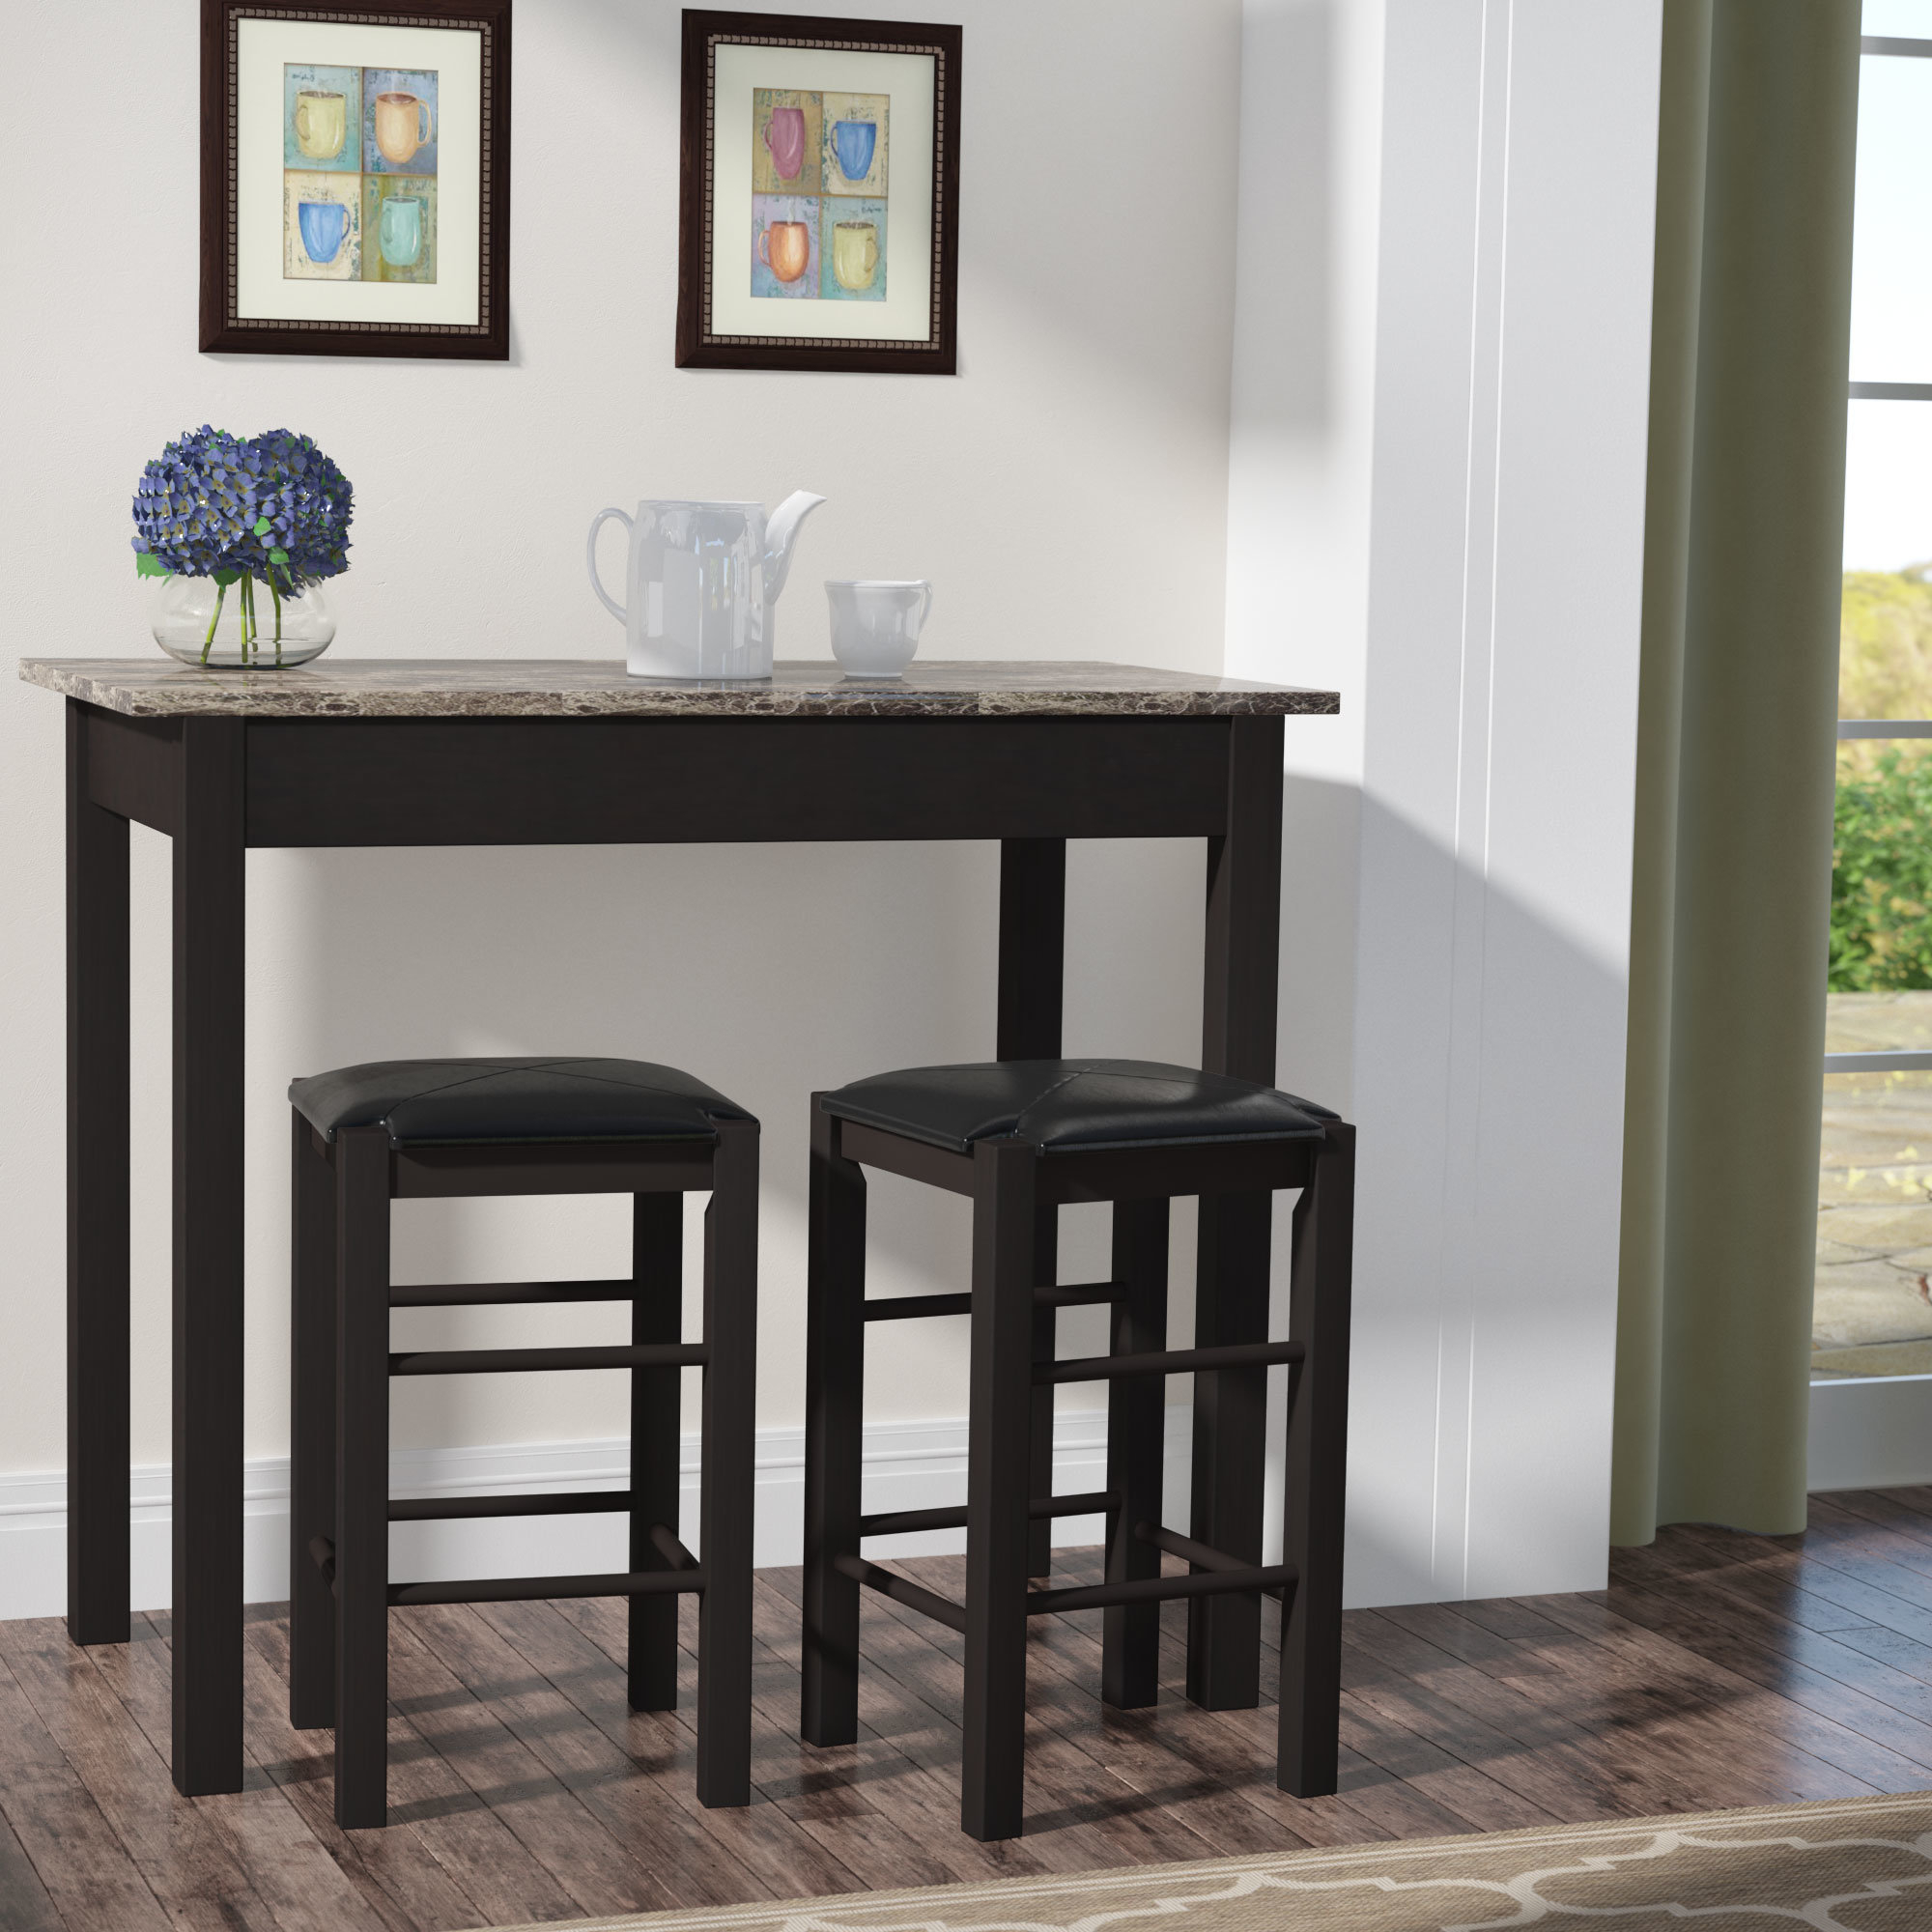 Sheetz 3 Piece Counter Height Dining Set In 2017 Askern 3 Piece Counter Height Dining Sets (Set Of 3) (Photo 3 of 20)